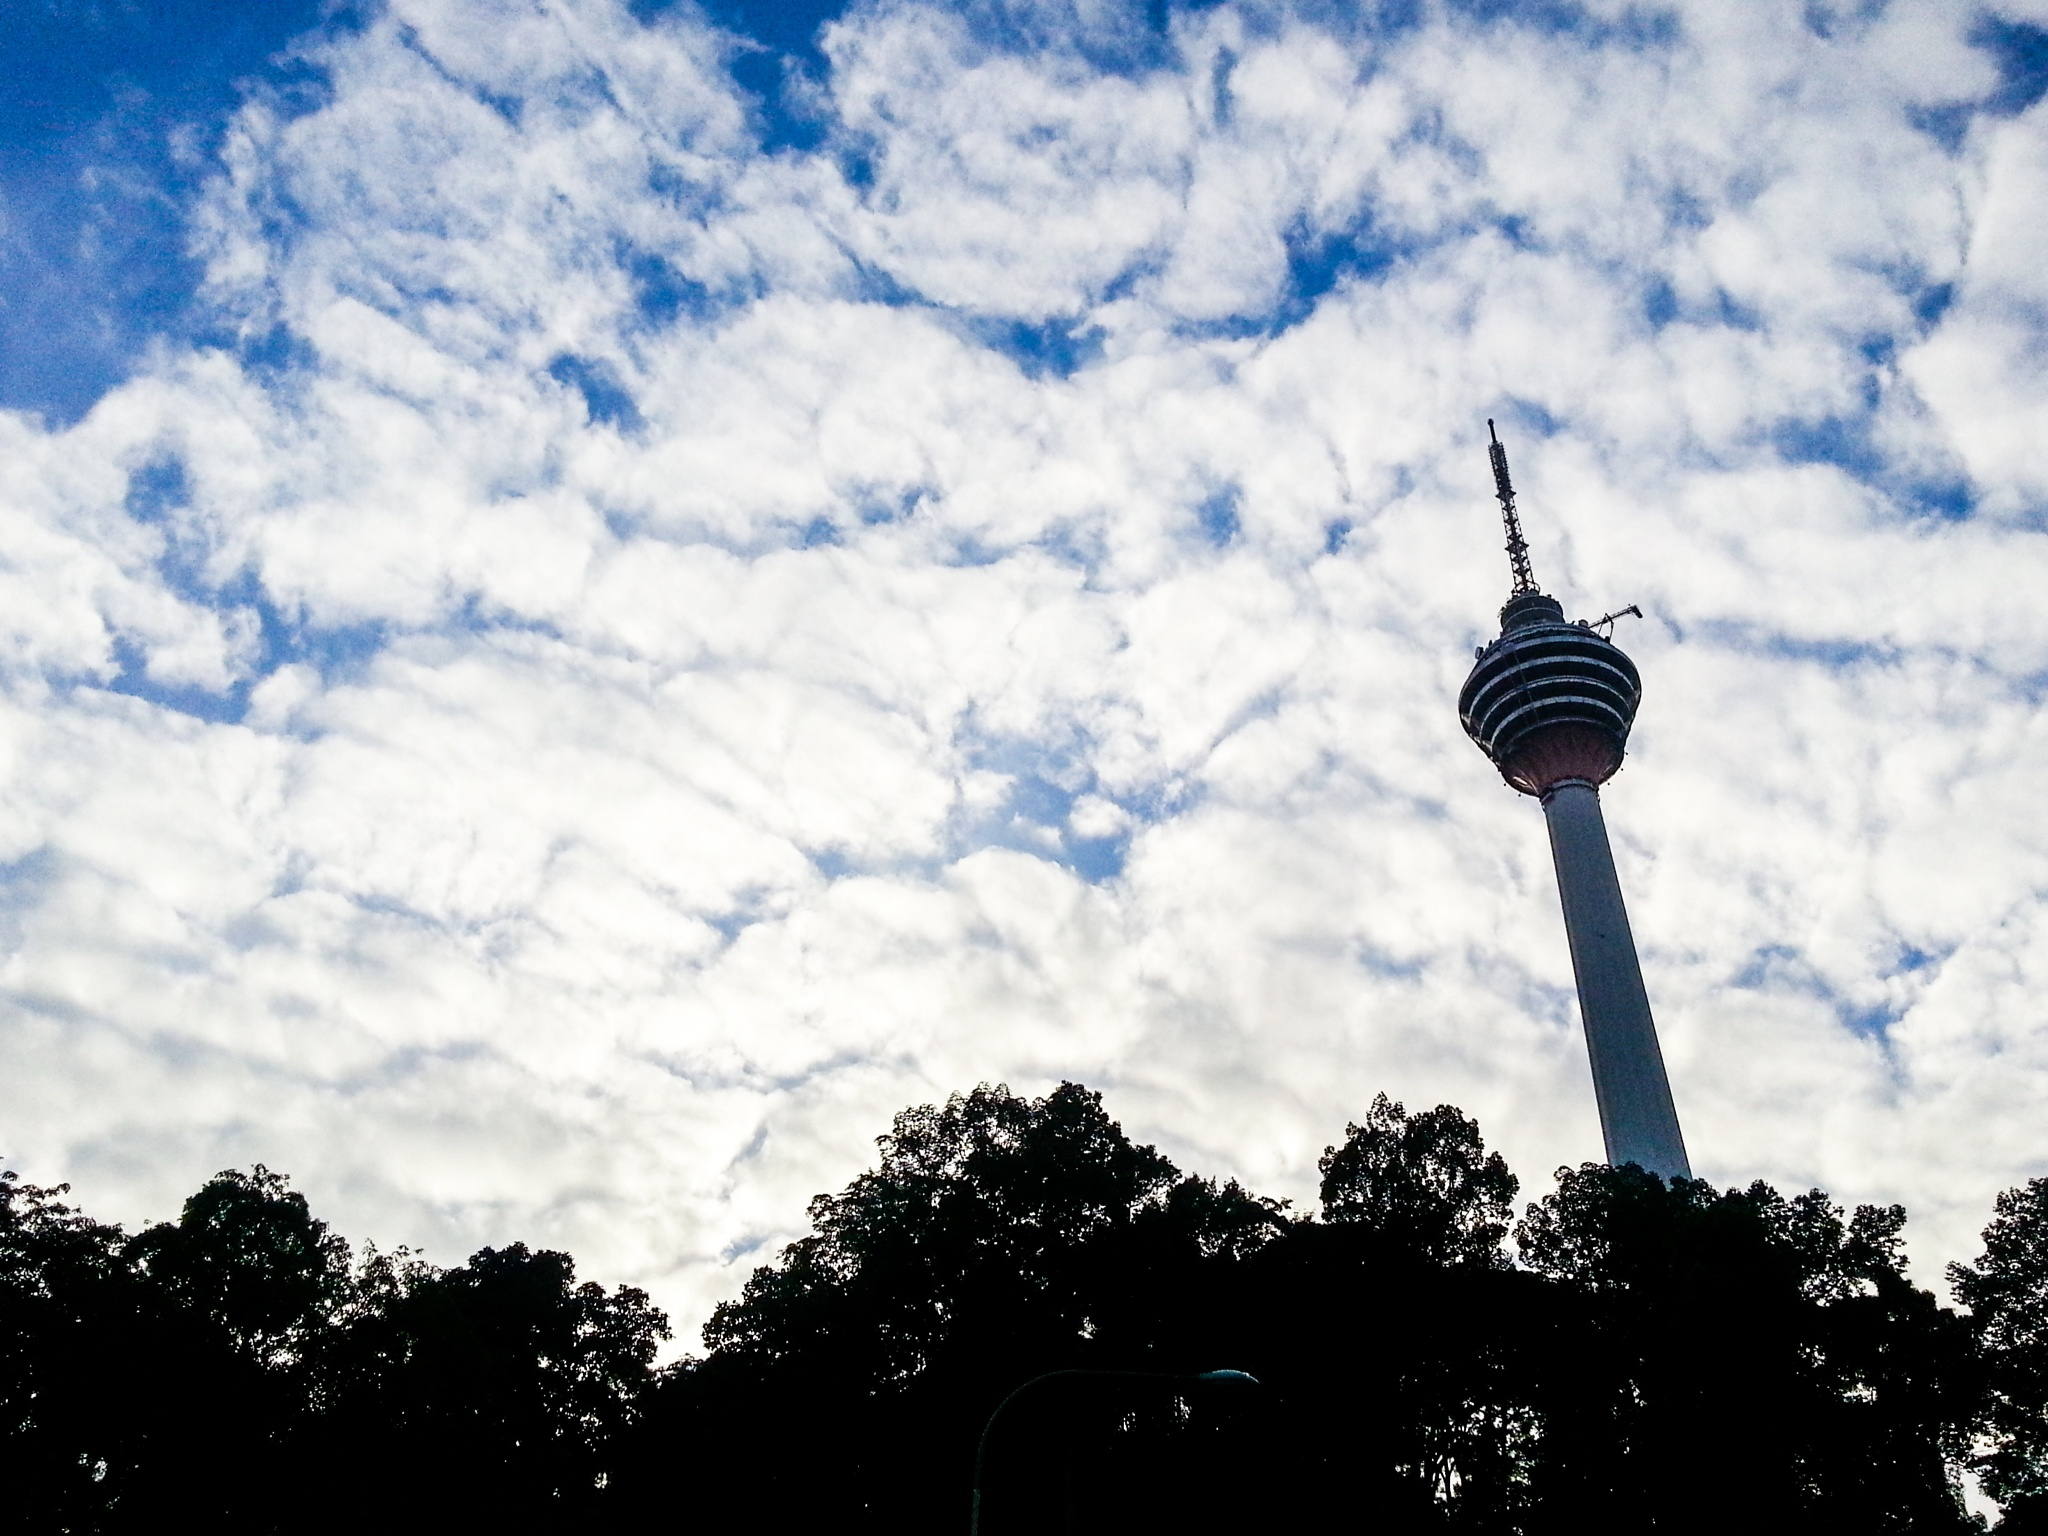 KL Tower_吉隆坡塔 by Lusee.K